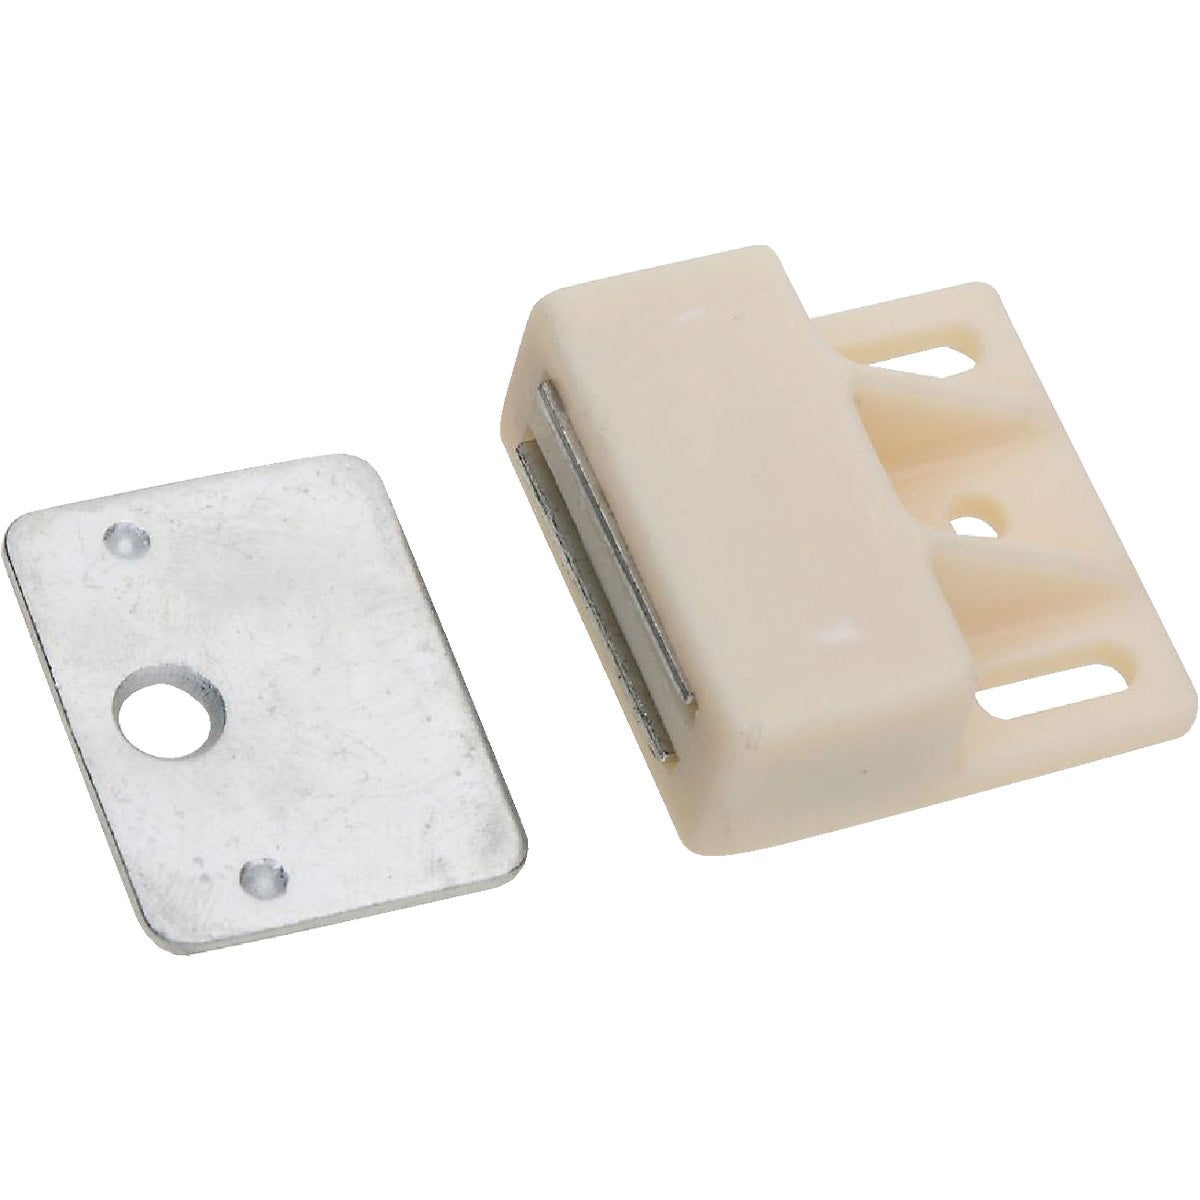 WHITE MAGNETIC CATCH - N149823 by National Mfg Co